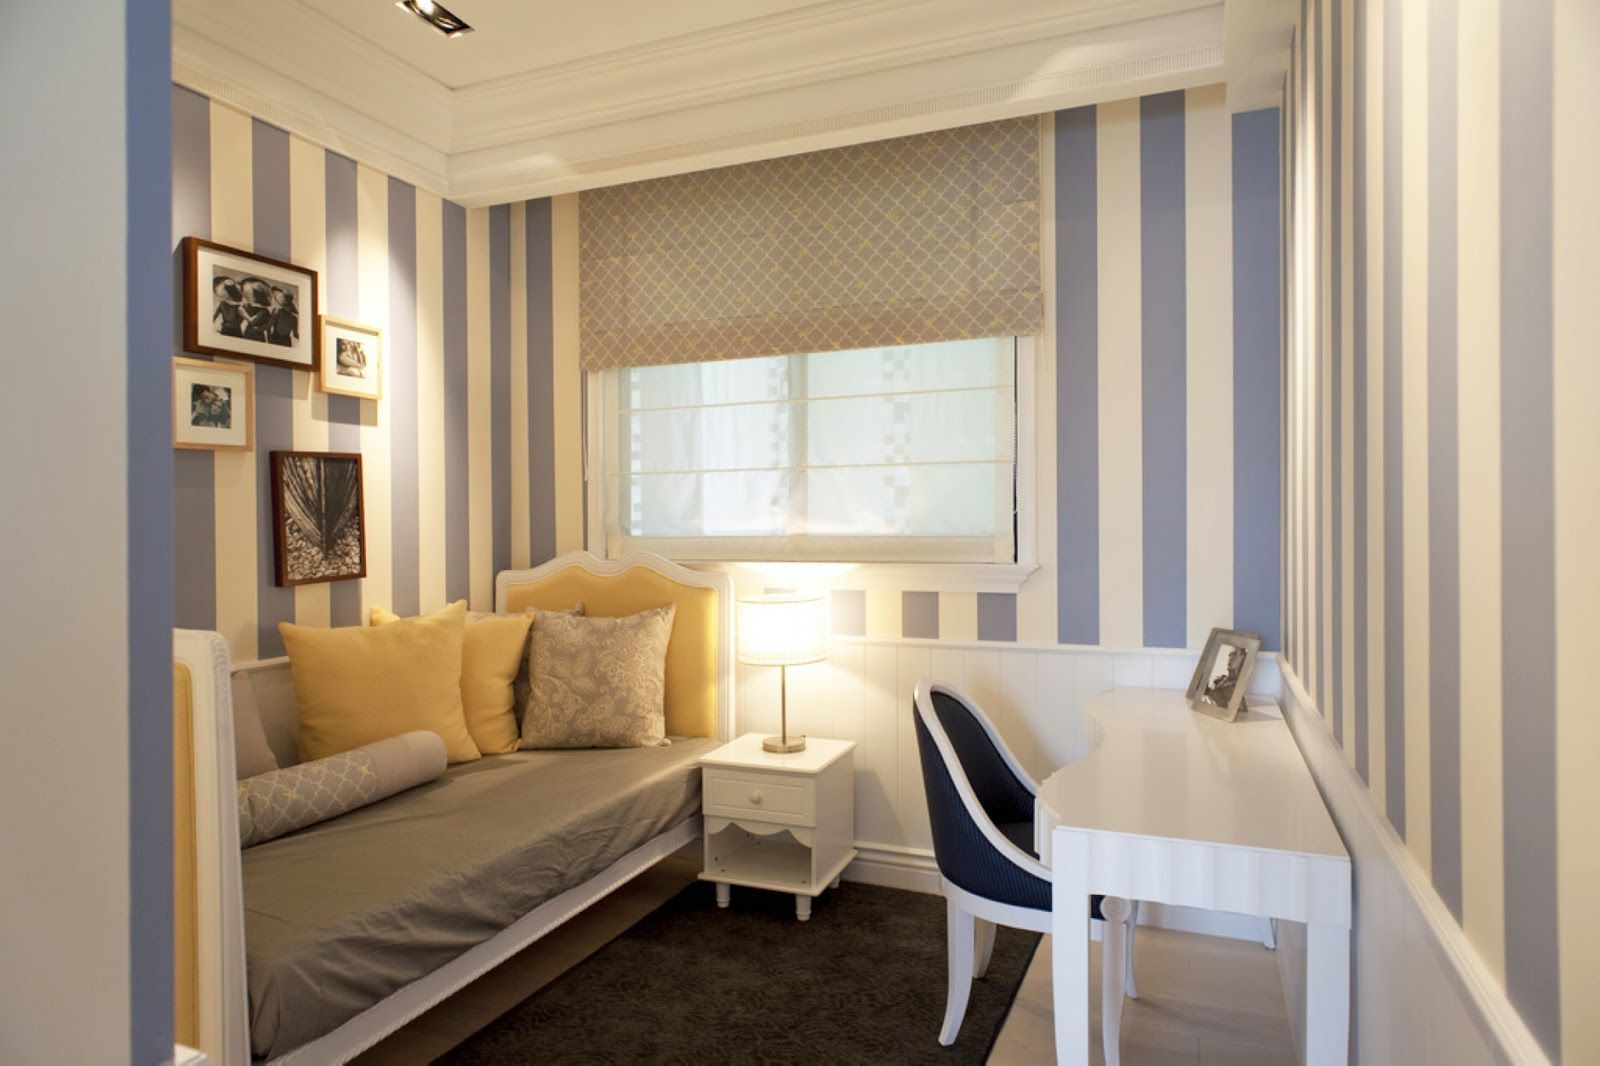 Small Guest Bedroom Paint Ideas. Our Taiwan Trip  Interior Design penthouse condo decor dressing room striped wallpaper